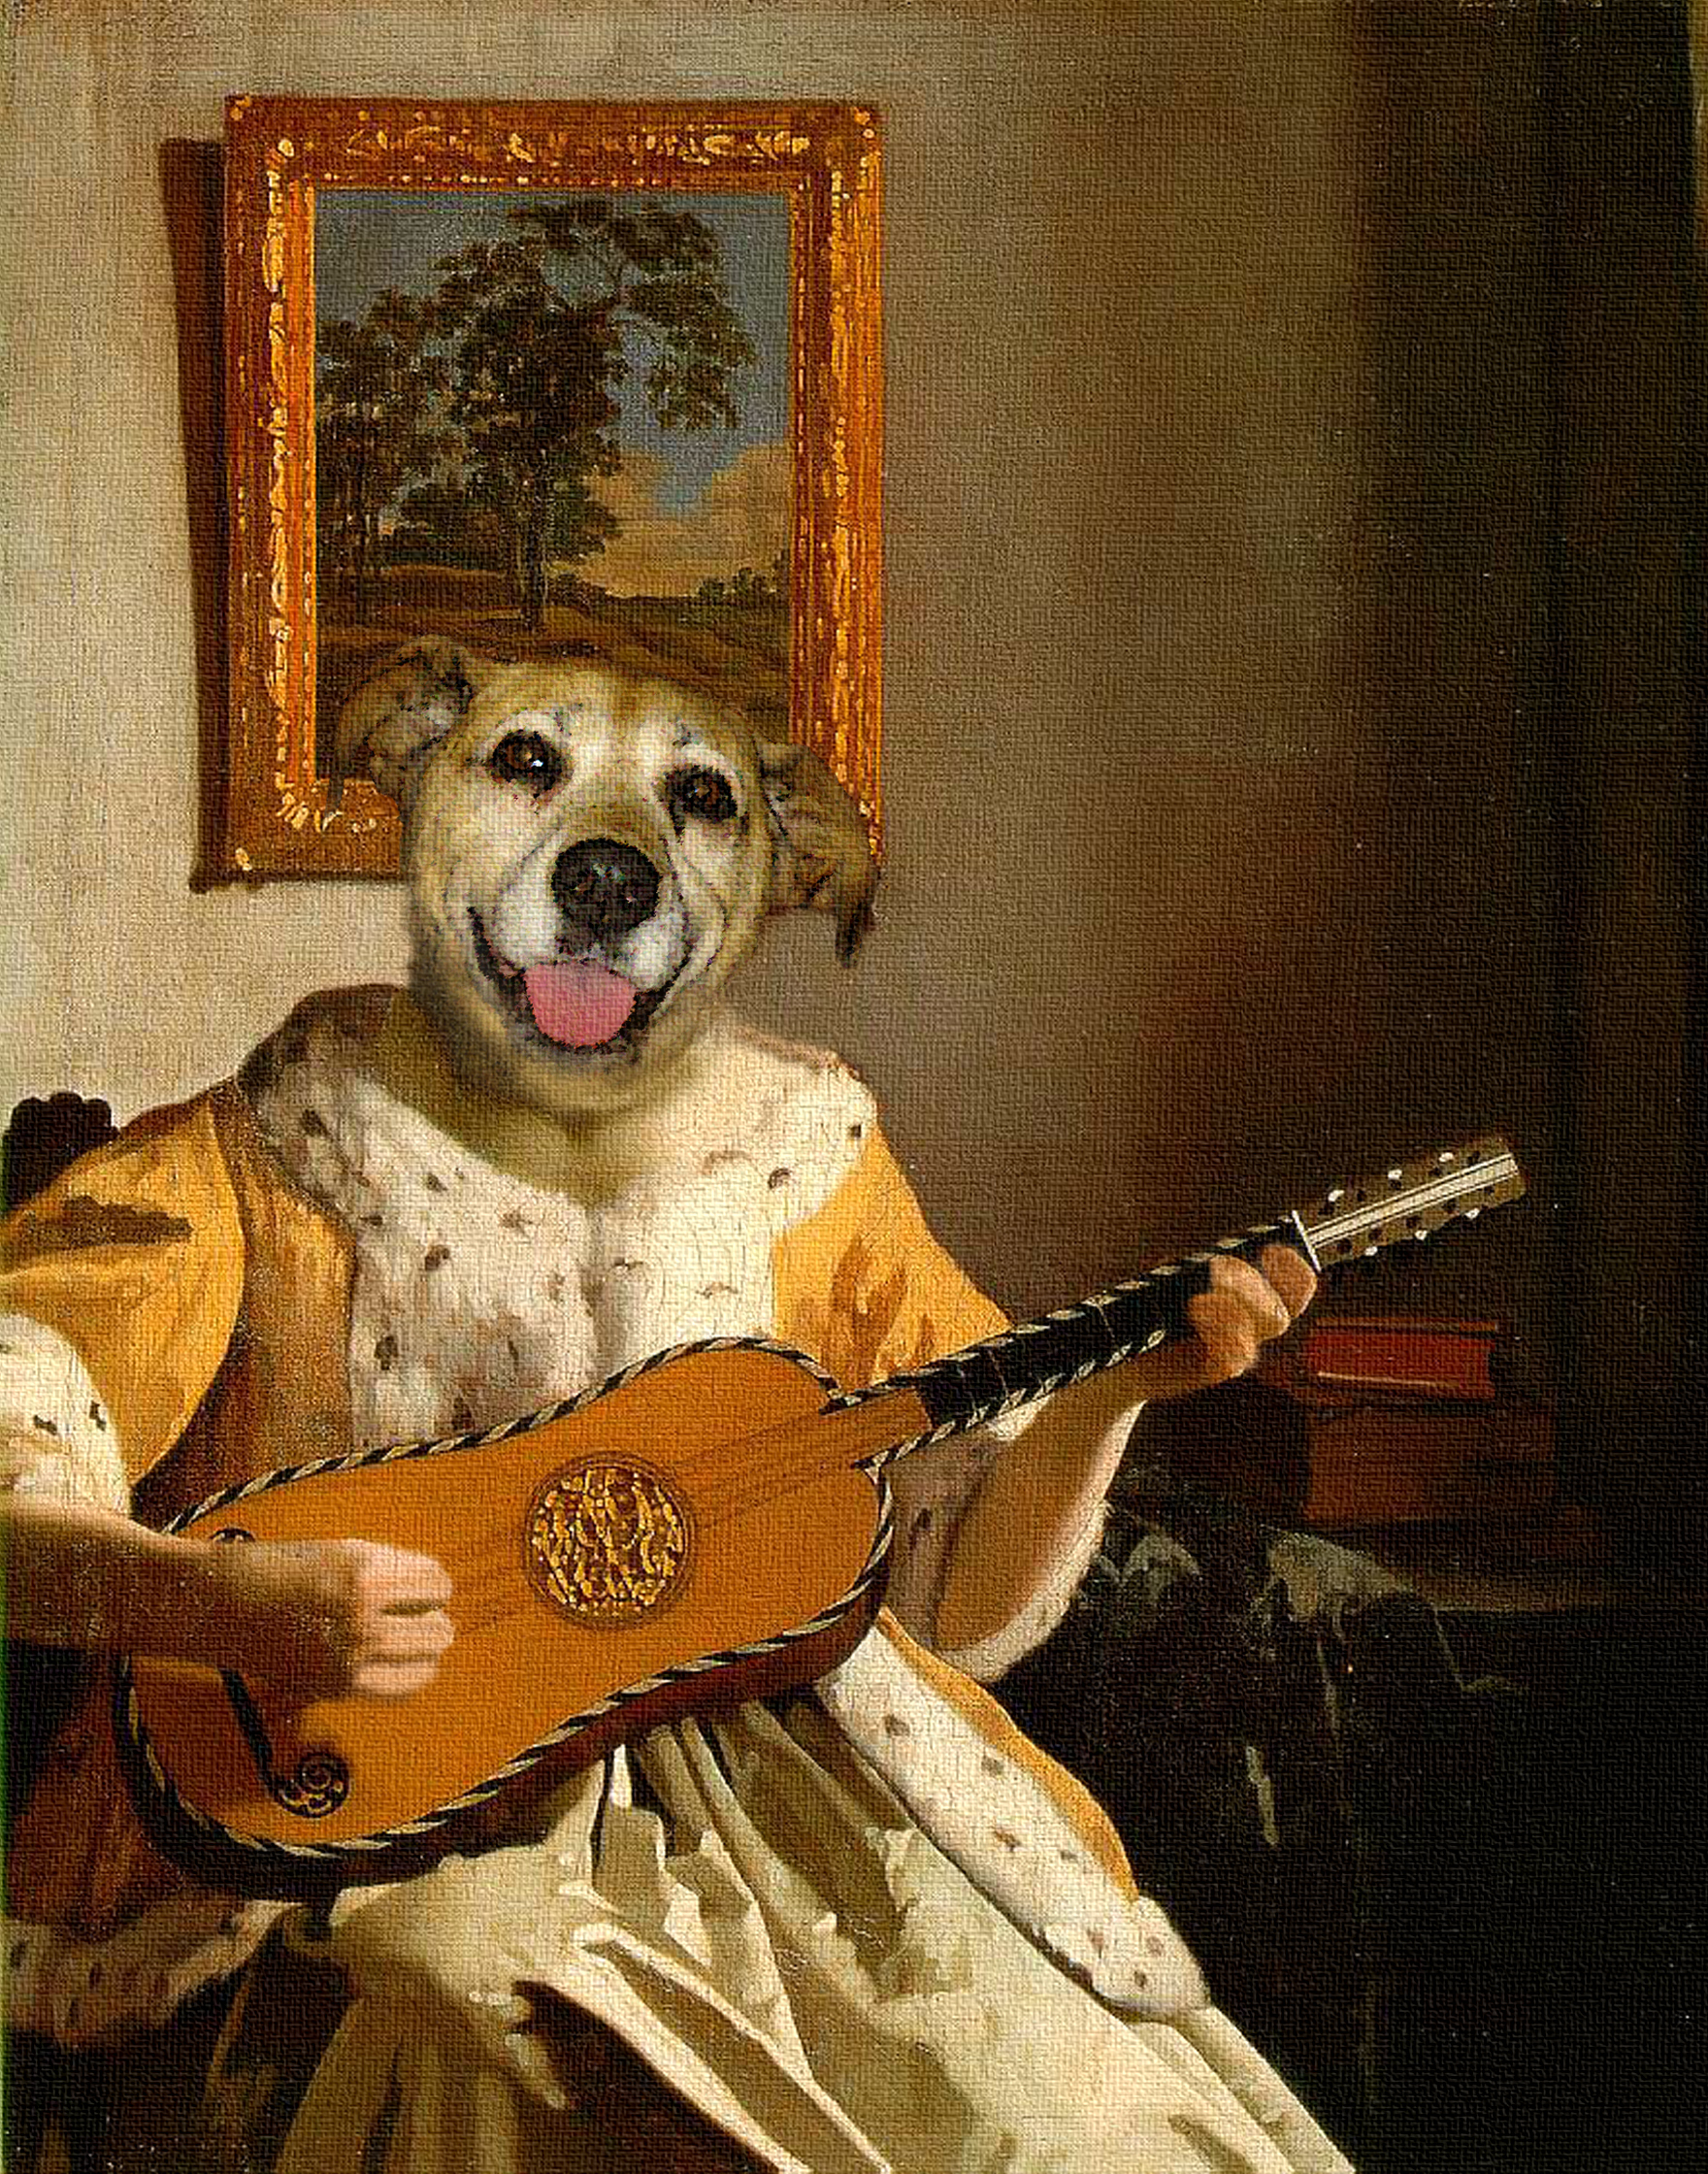 Vermeer_guitar-player_Huddie_11x14